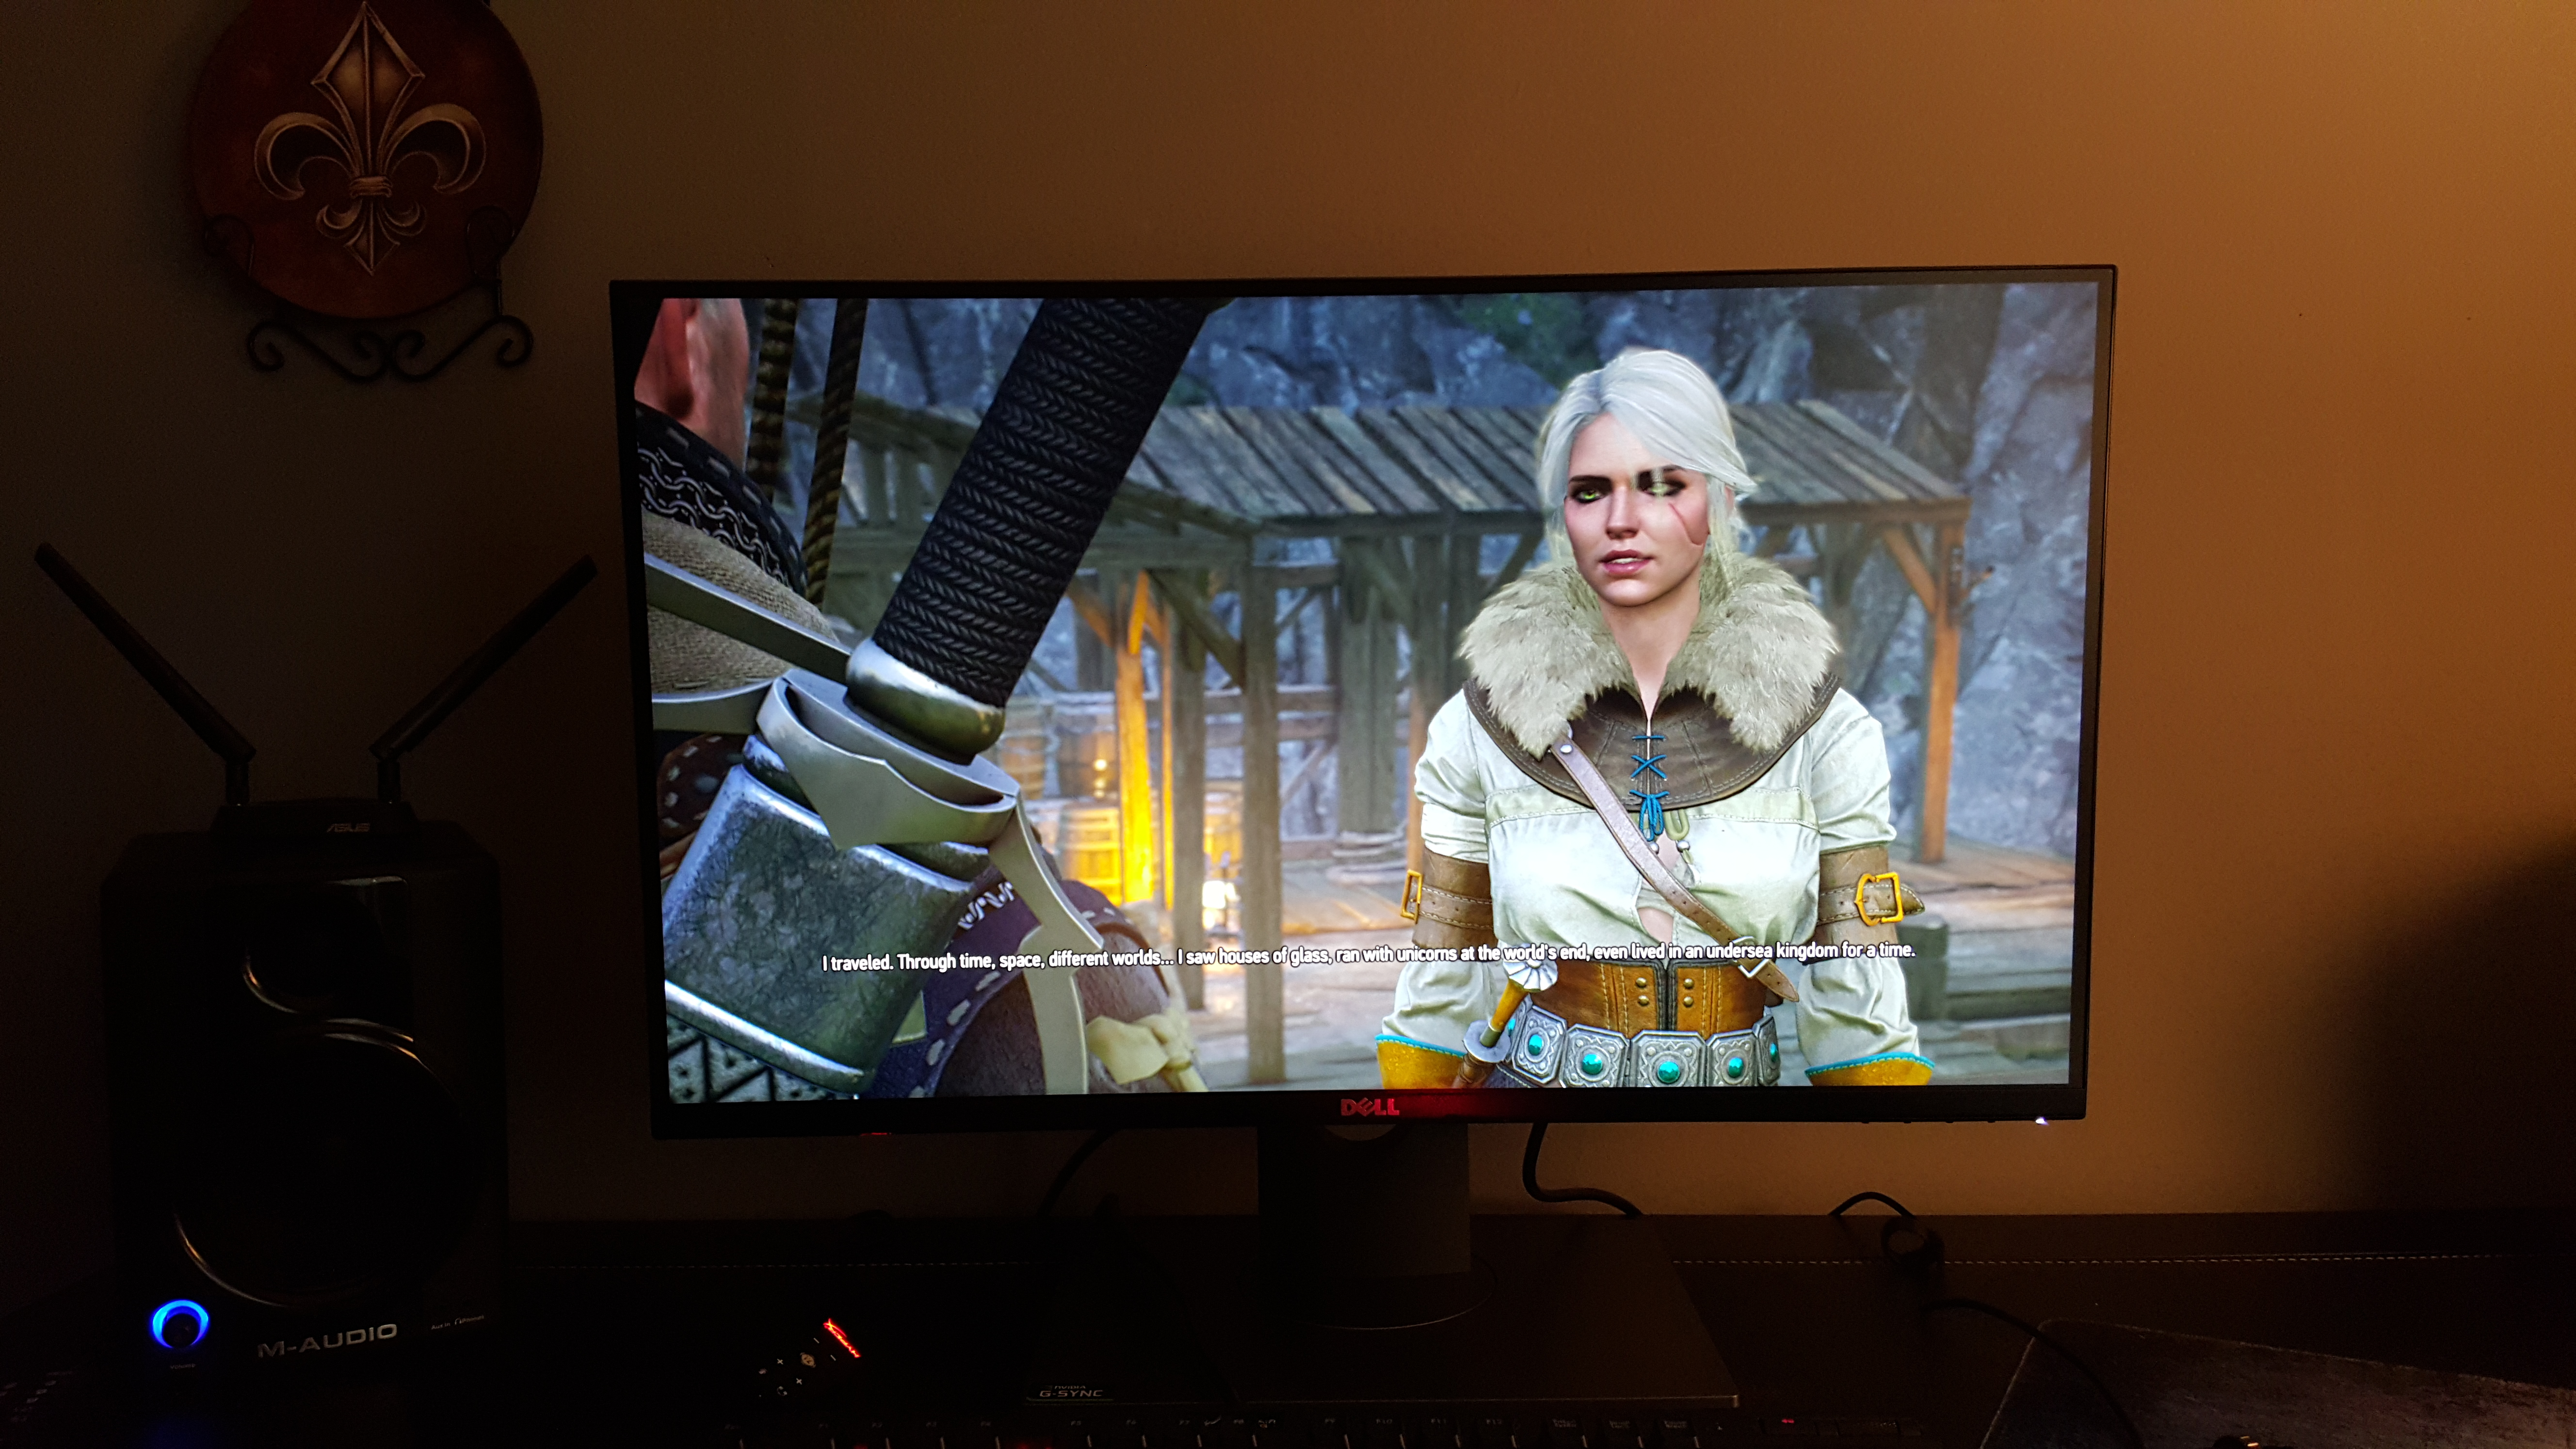 Dell S2716DG 1440 144 Hz G-Sync Owners Thread - Page 98